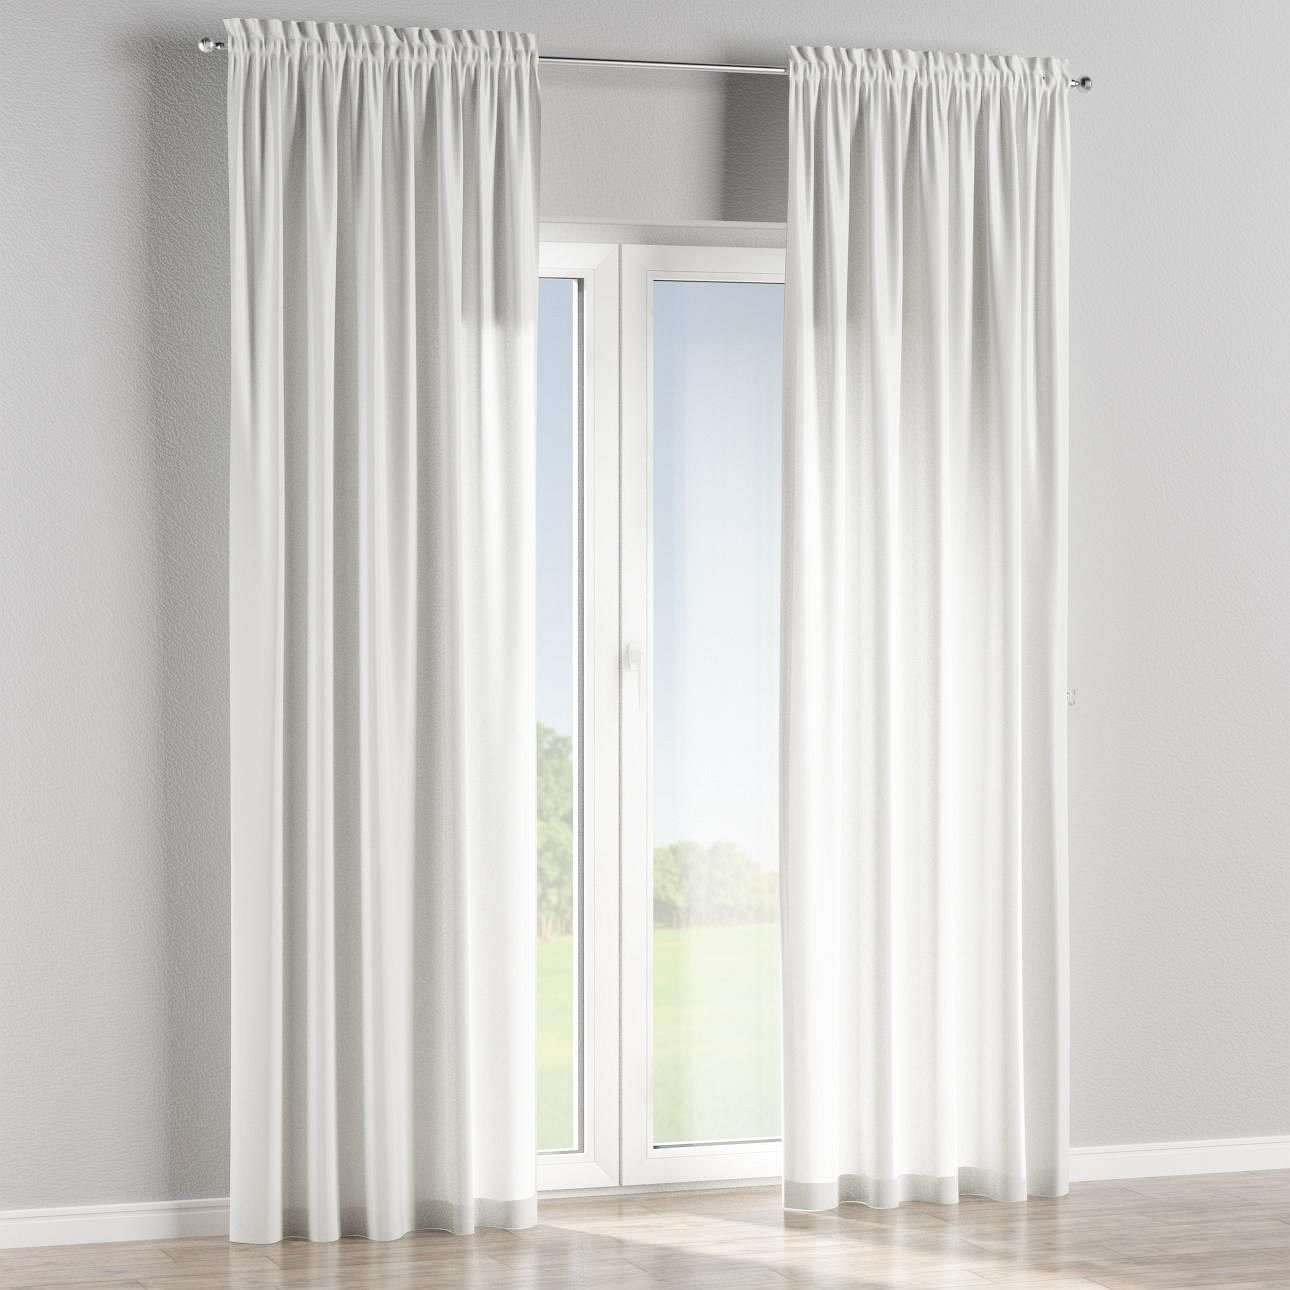 Slot and frill lined curtains in collection Fleur , fabric: 137-25